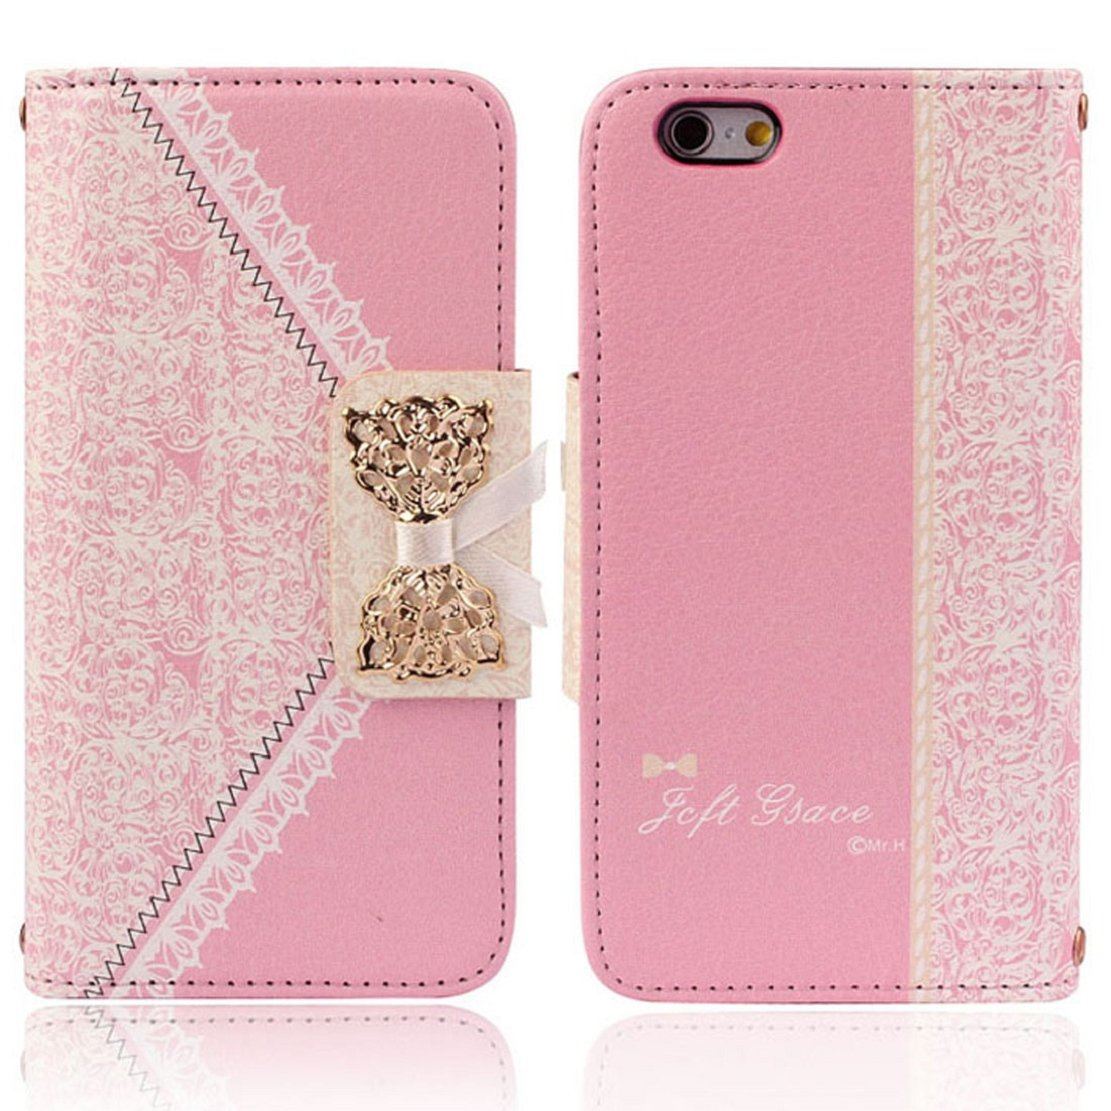 Fashion Pink Fresh Cute Flip Wallet Leather Case Cover for iPhone 6 4.7''